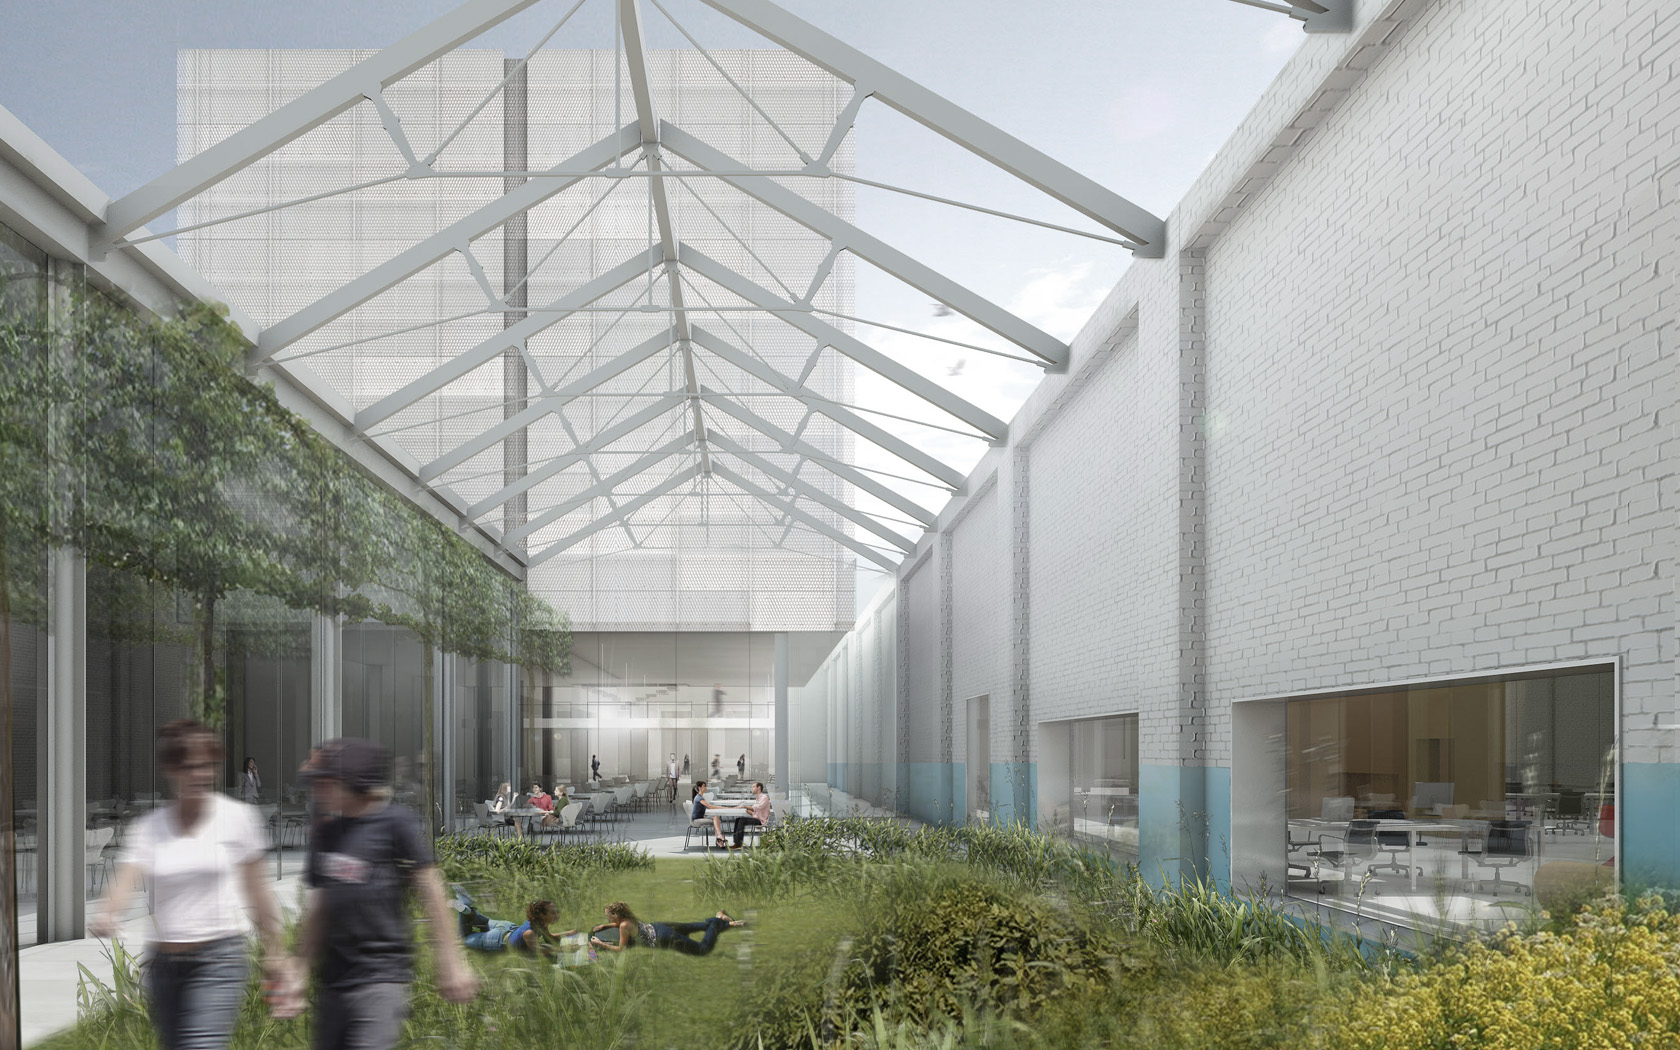 By taking out some of the weak spots of the complex in bad condition, open, green areas are created, scaling down the large mass of the building and providing daylight to all spaces.